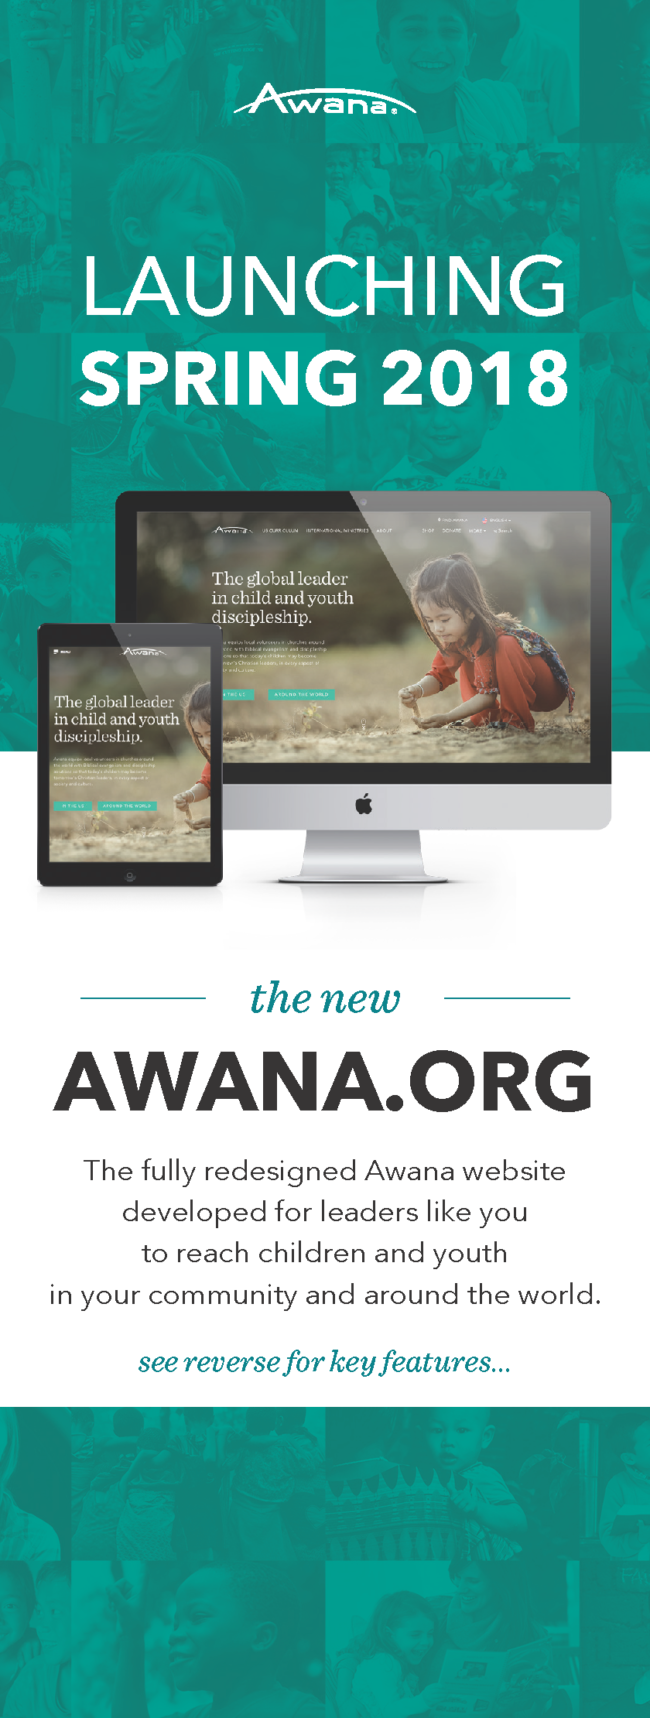 The New Awana.org is Coming Soon!